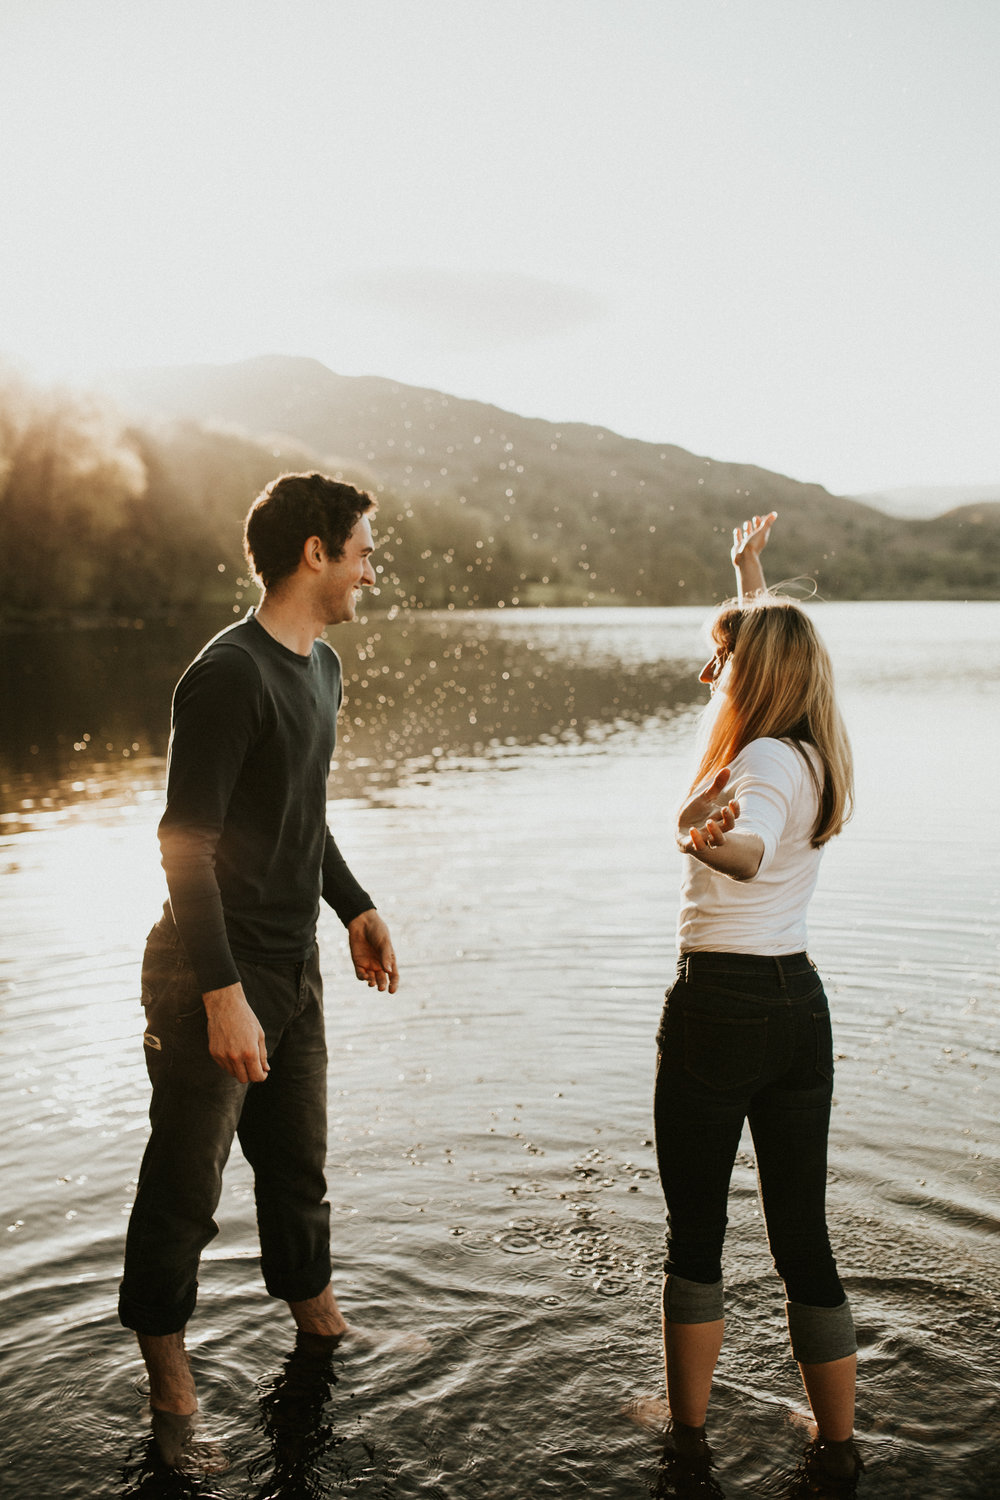 Claire-Clive-Engagement-Shoot-Lake-District-Darina-Stoda-Photography-89.jpg